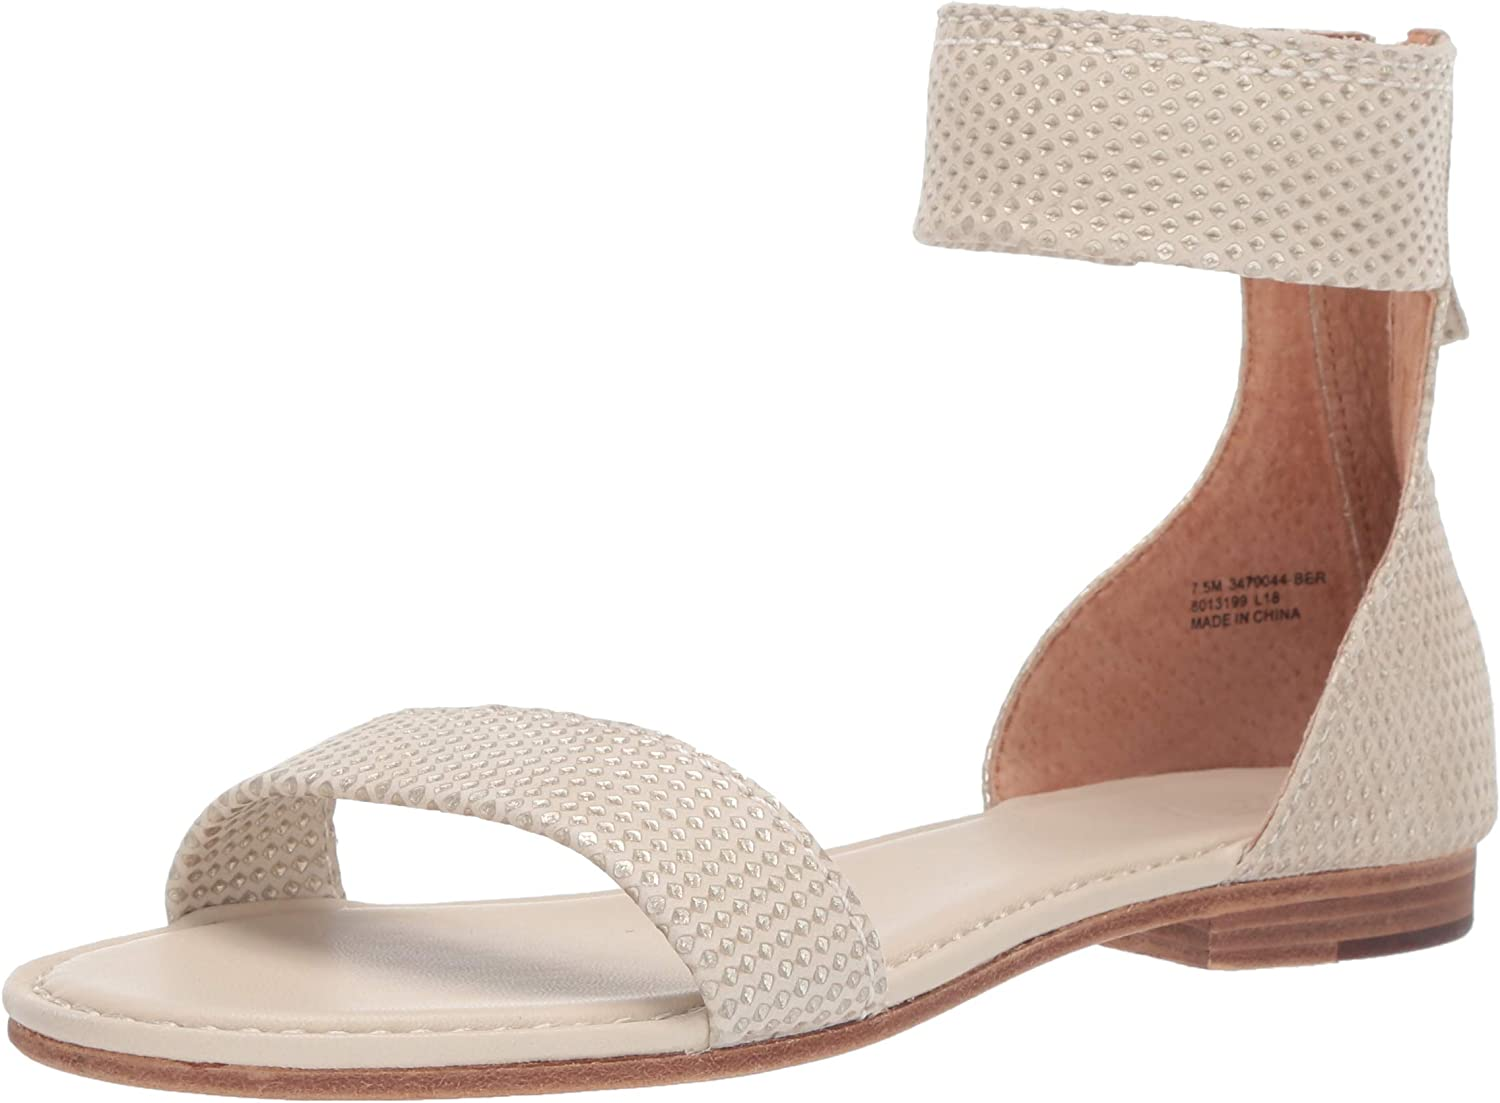 Max 69% OFF FRYE Women's Carson Ankle Sandal Recommendation Zip Gladiator